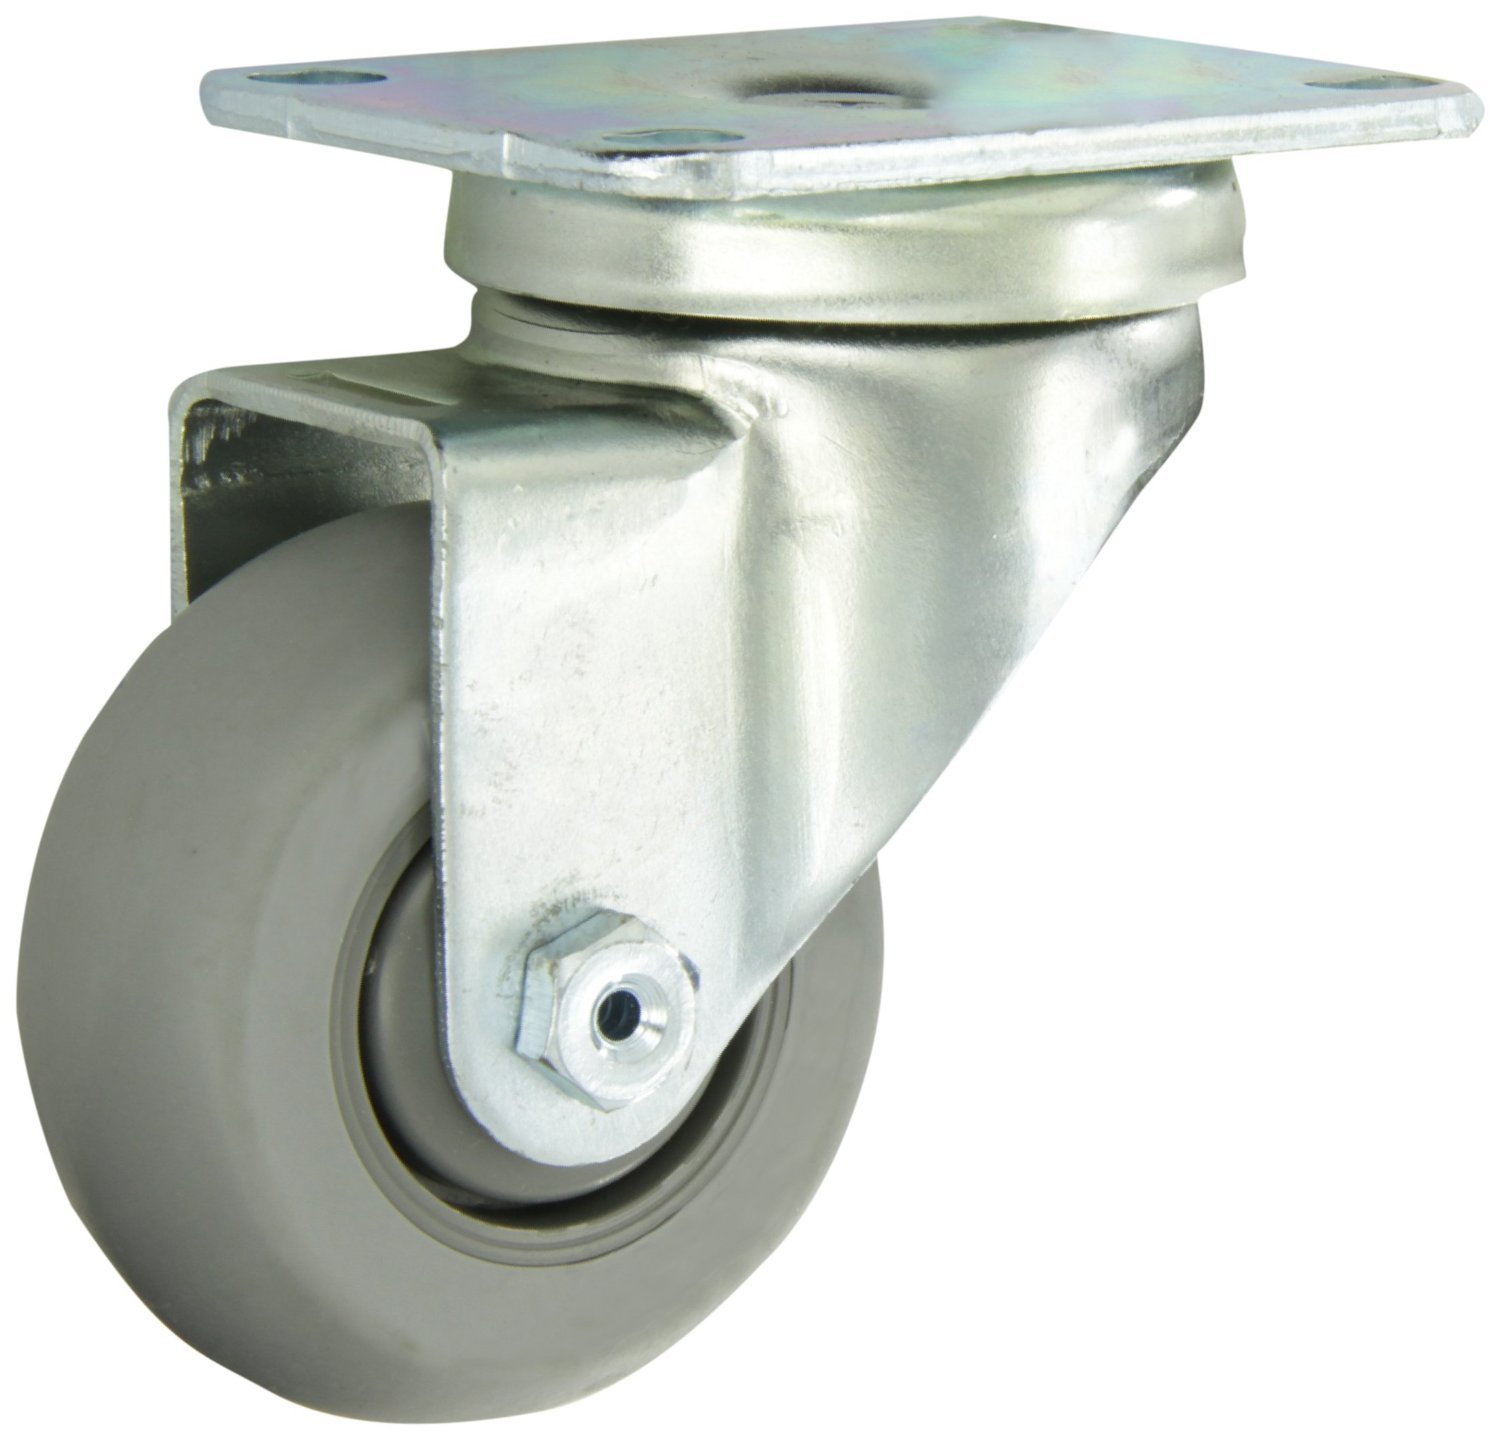 Albion 04XR03028S 3'' Diameter X-tra Soft Rubber Wheel Light Duty Stainless Steel Swivel Plate Caster, Round Tread, Precision Ball Bearing, 3-5/8'' Length x 2-1/2'' Width Base Plate, 200 lb. Capacity